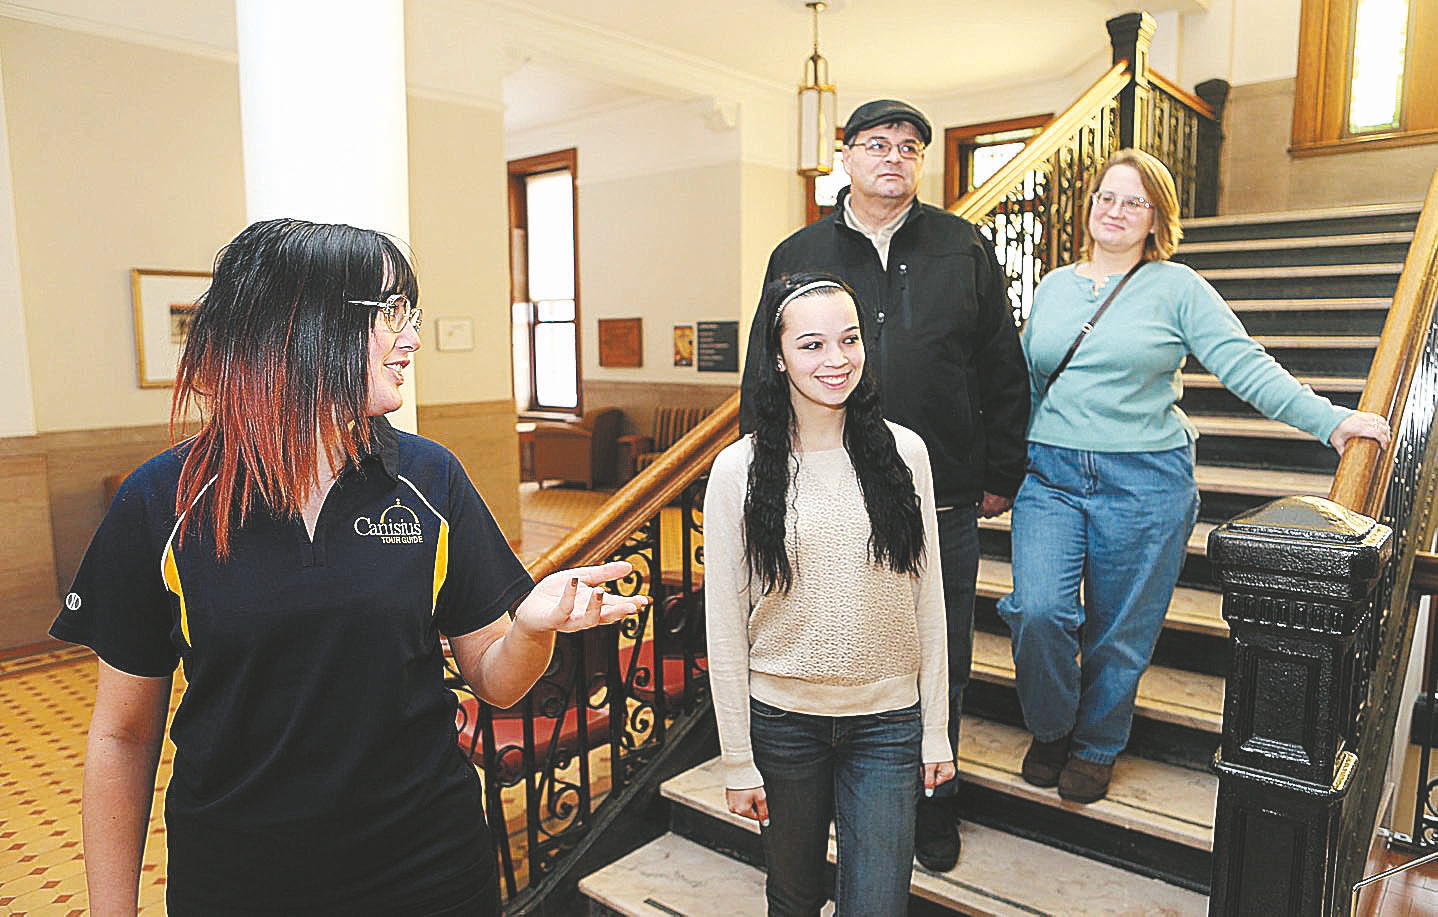 Canisius College student Molly Rutter, left, talks with high-schooler Lauren Torrisi and her parents, Donna and Joe, during a tour in 2014.